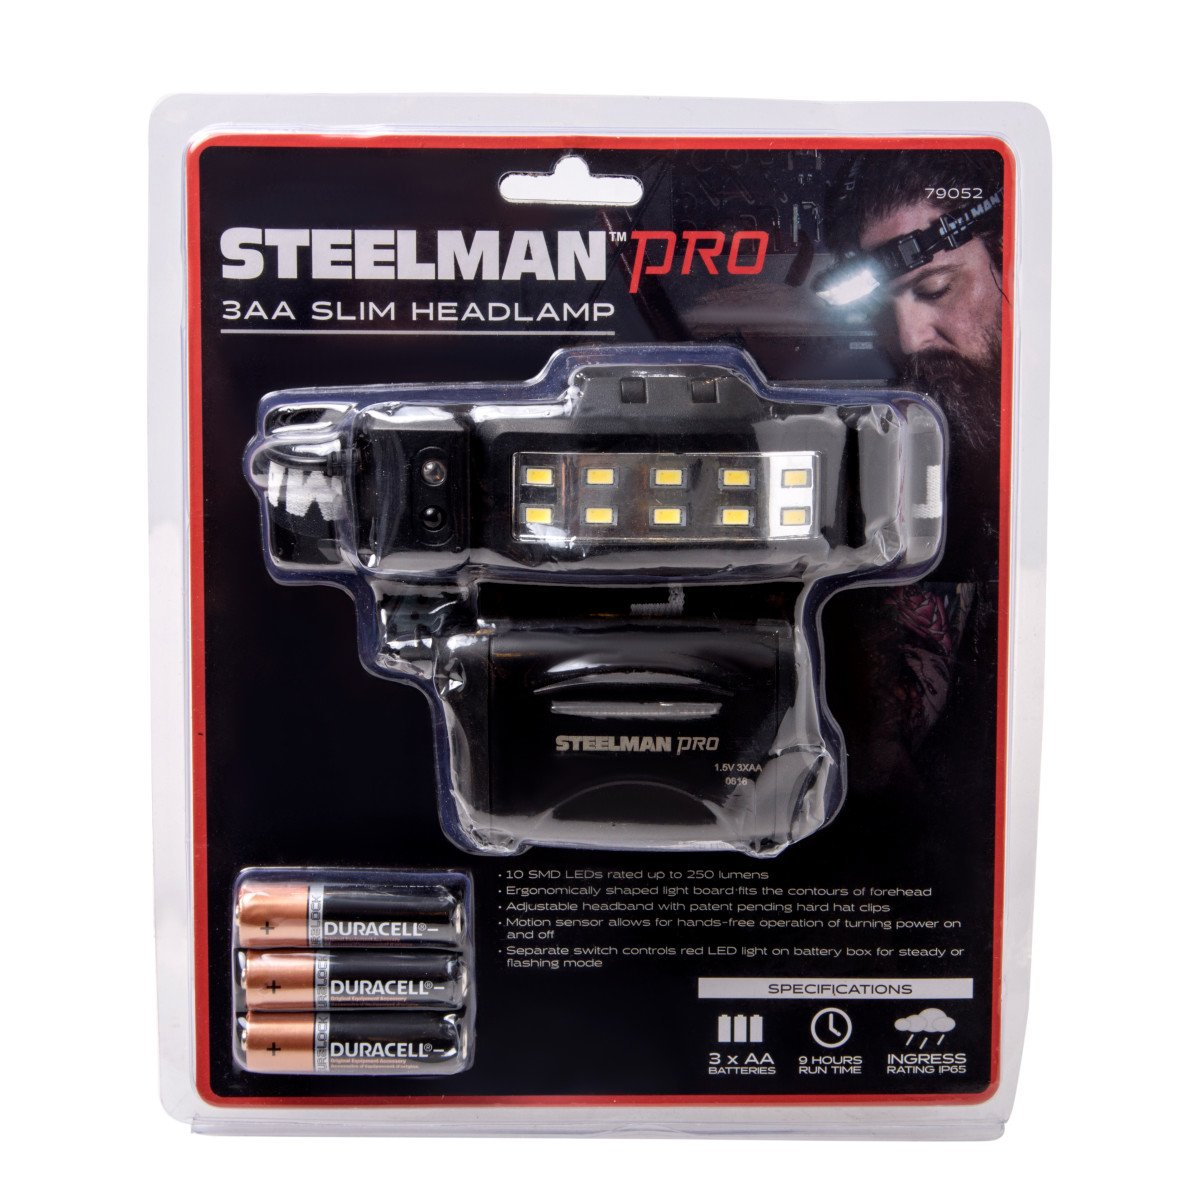 STEELMAN PRO 79052 Slim Profile LED Headlamp with Rear Flasher and 3 AA Batteries by Steelman Pro (Image #6)